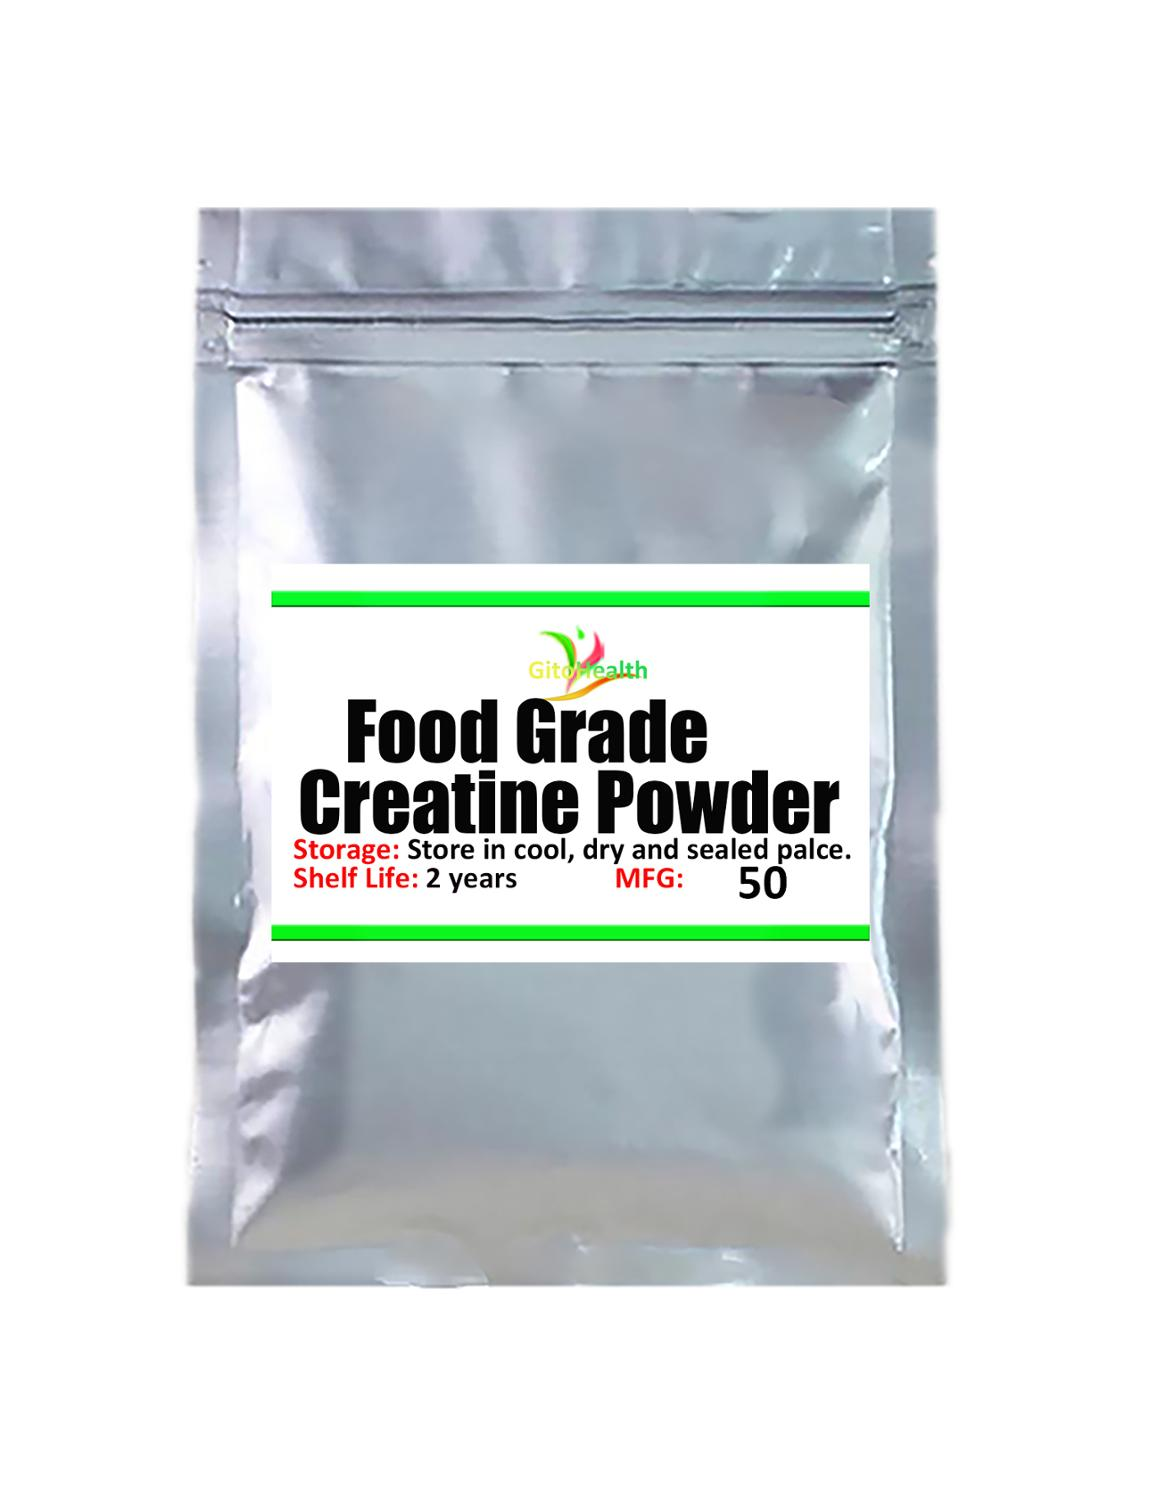 50g-1000g Food Grade 99% creatine powder, fast muscle mass growth supplement add more muscle - suitable for all bodybuilding sup